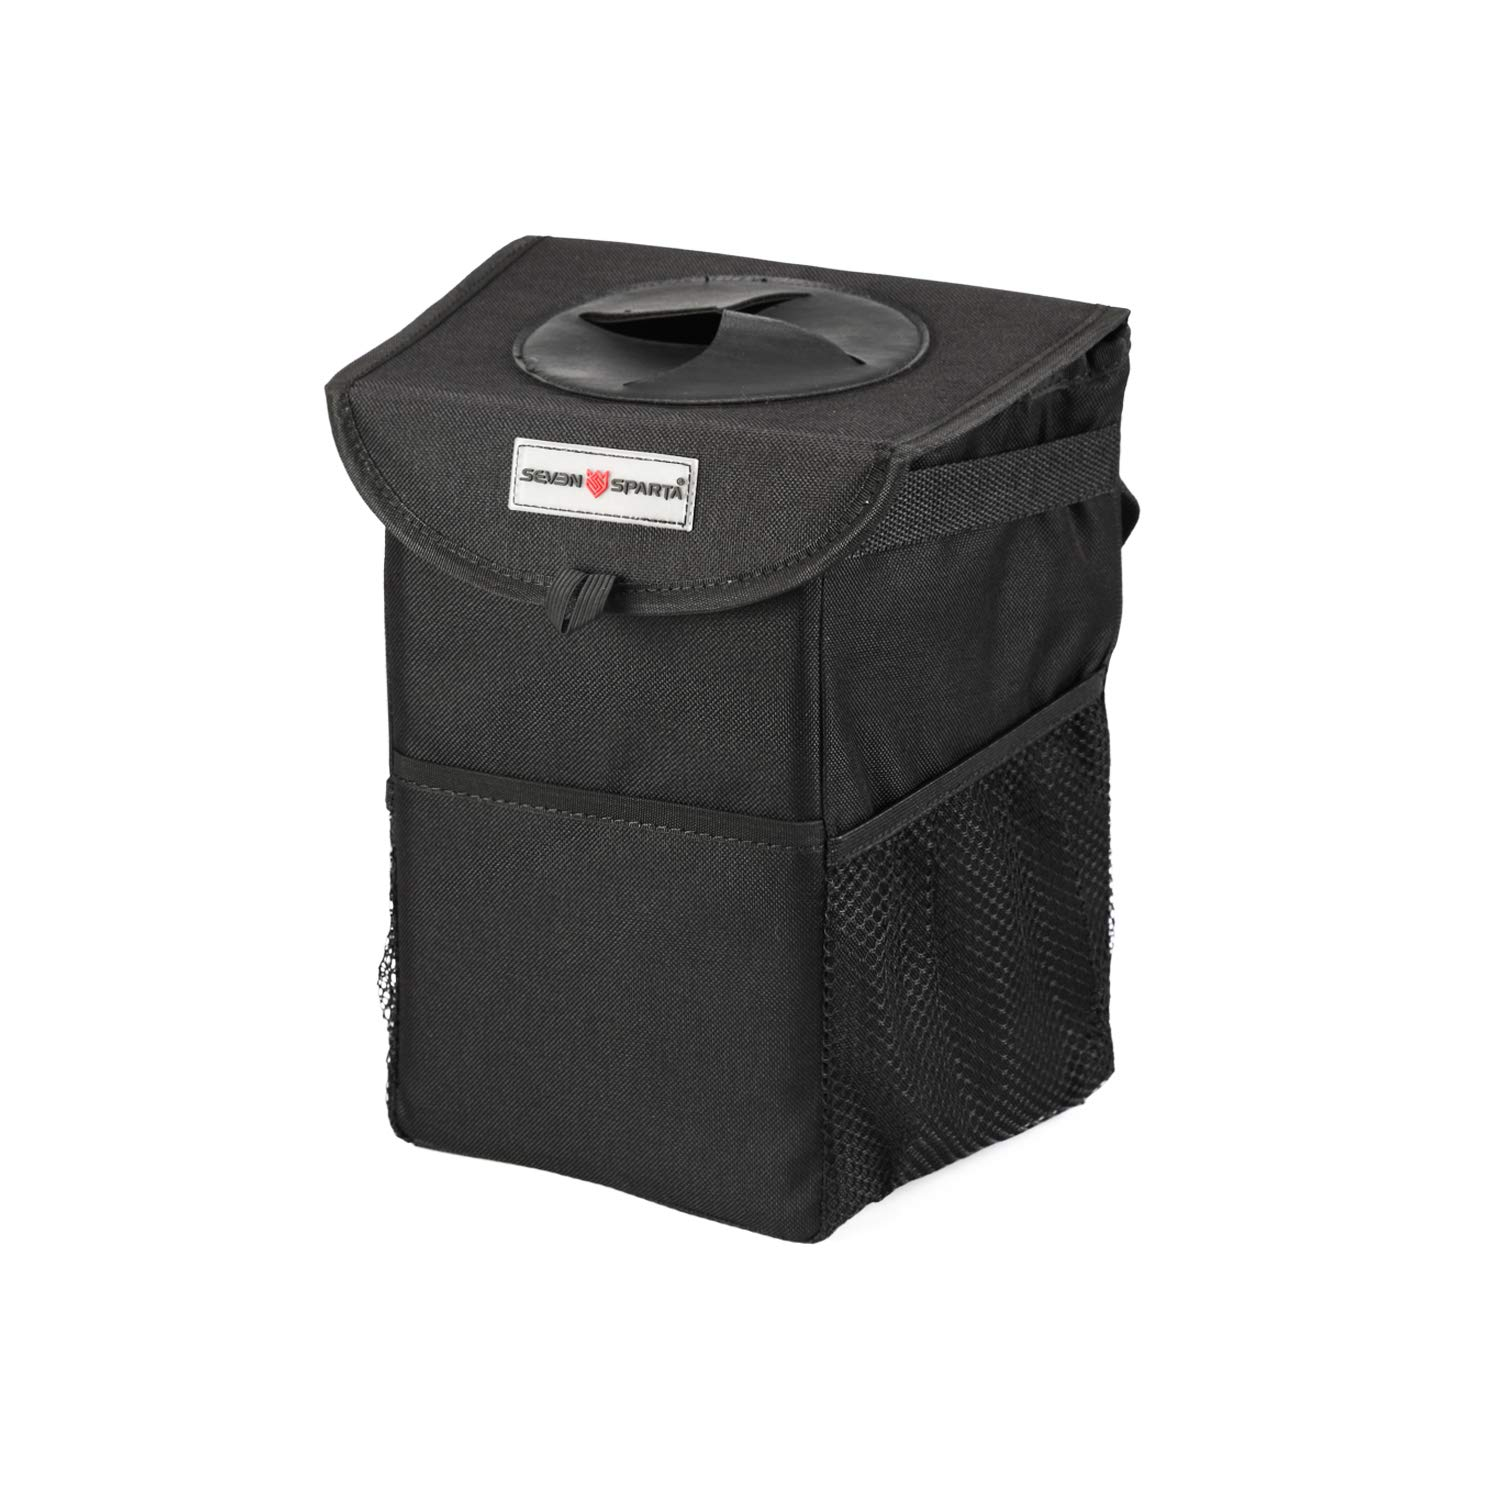 Seven Sparta Car Trash Can with Lid and 3 Storage Bag Hanging for Headrest with Strap Car Waterproof Seat Garbage Bag (9 1/2' H x 8' W x 6' D)